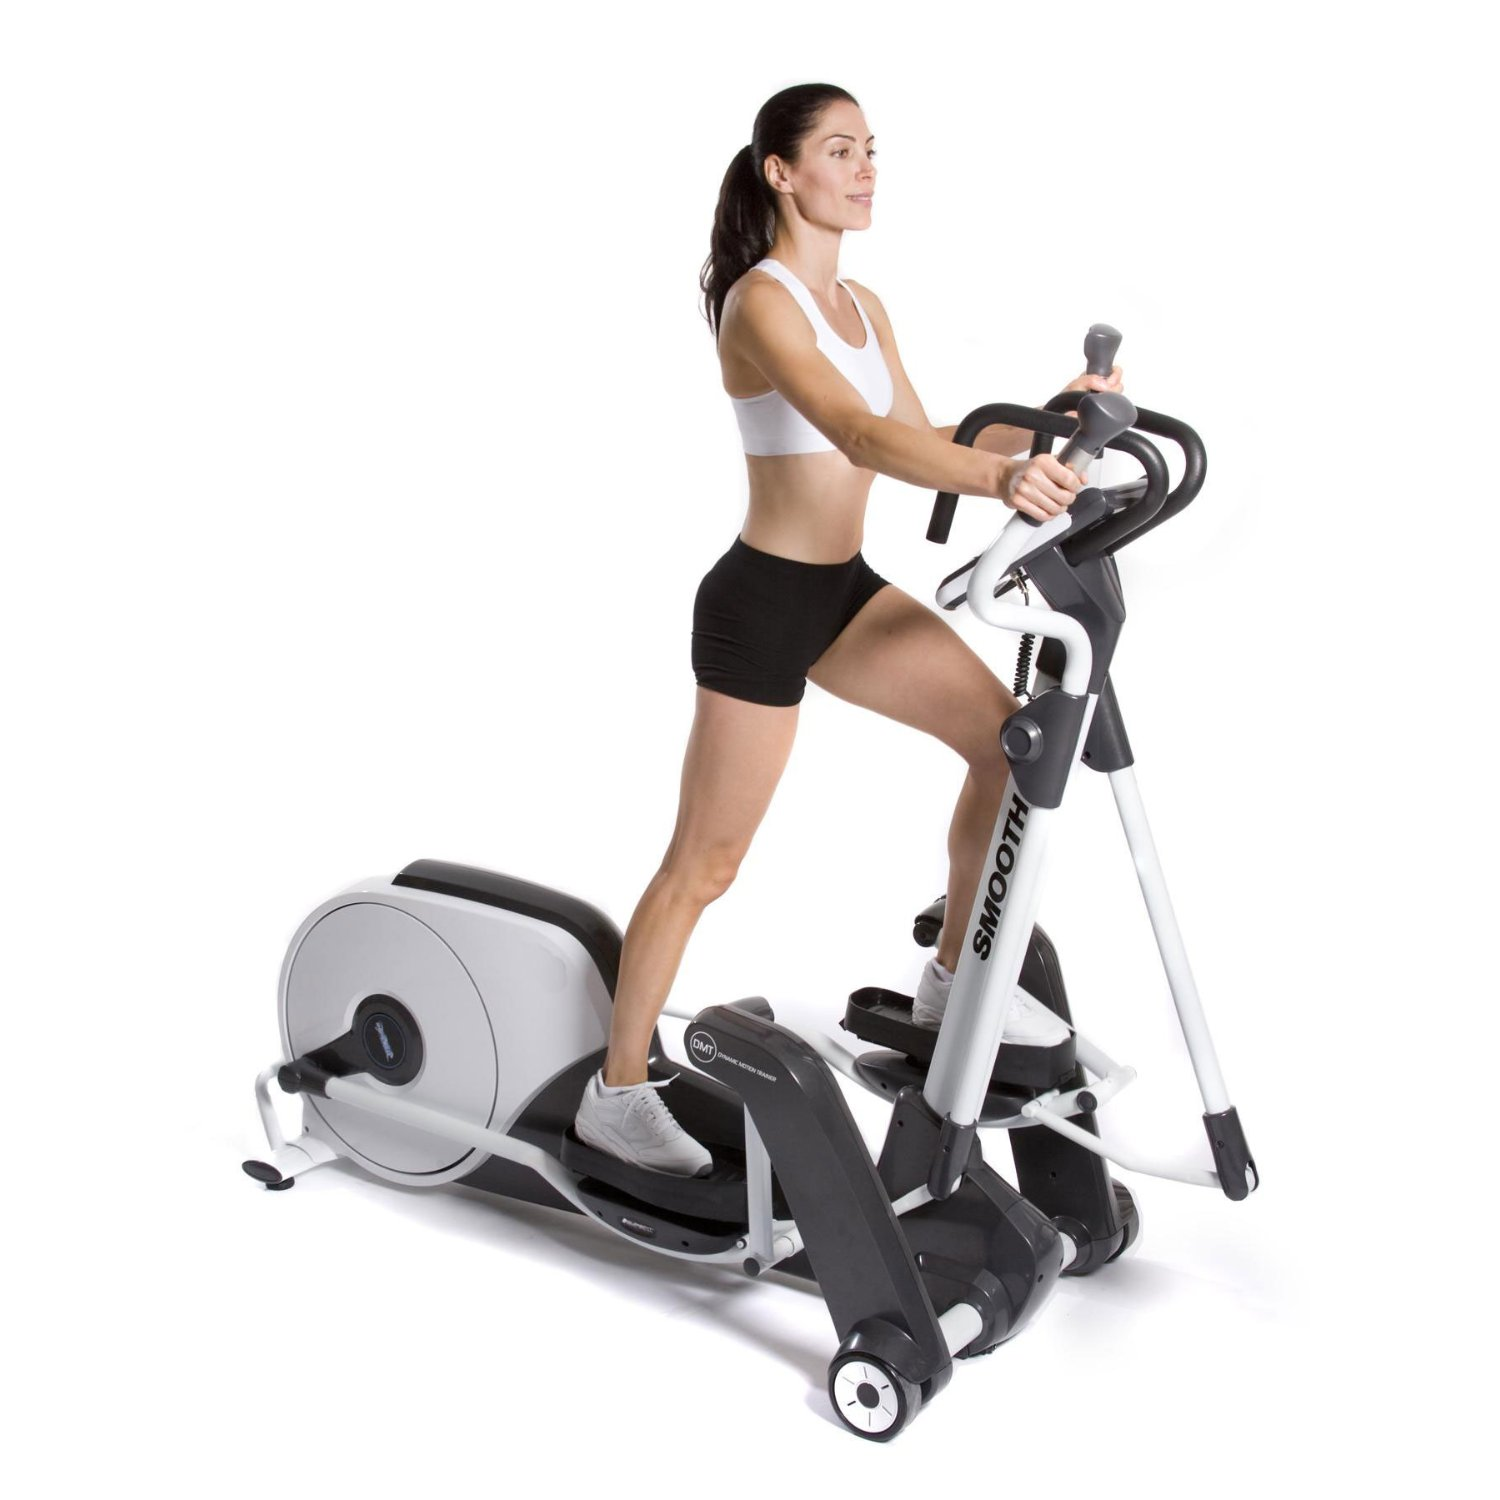 Elliptical trainer reviews, Elliptical machine weight loss